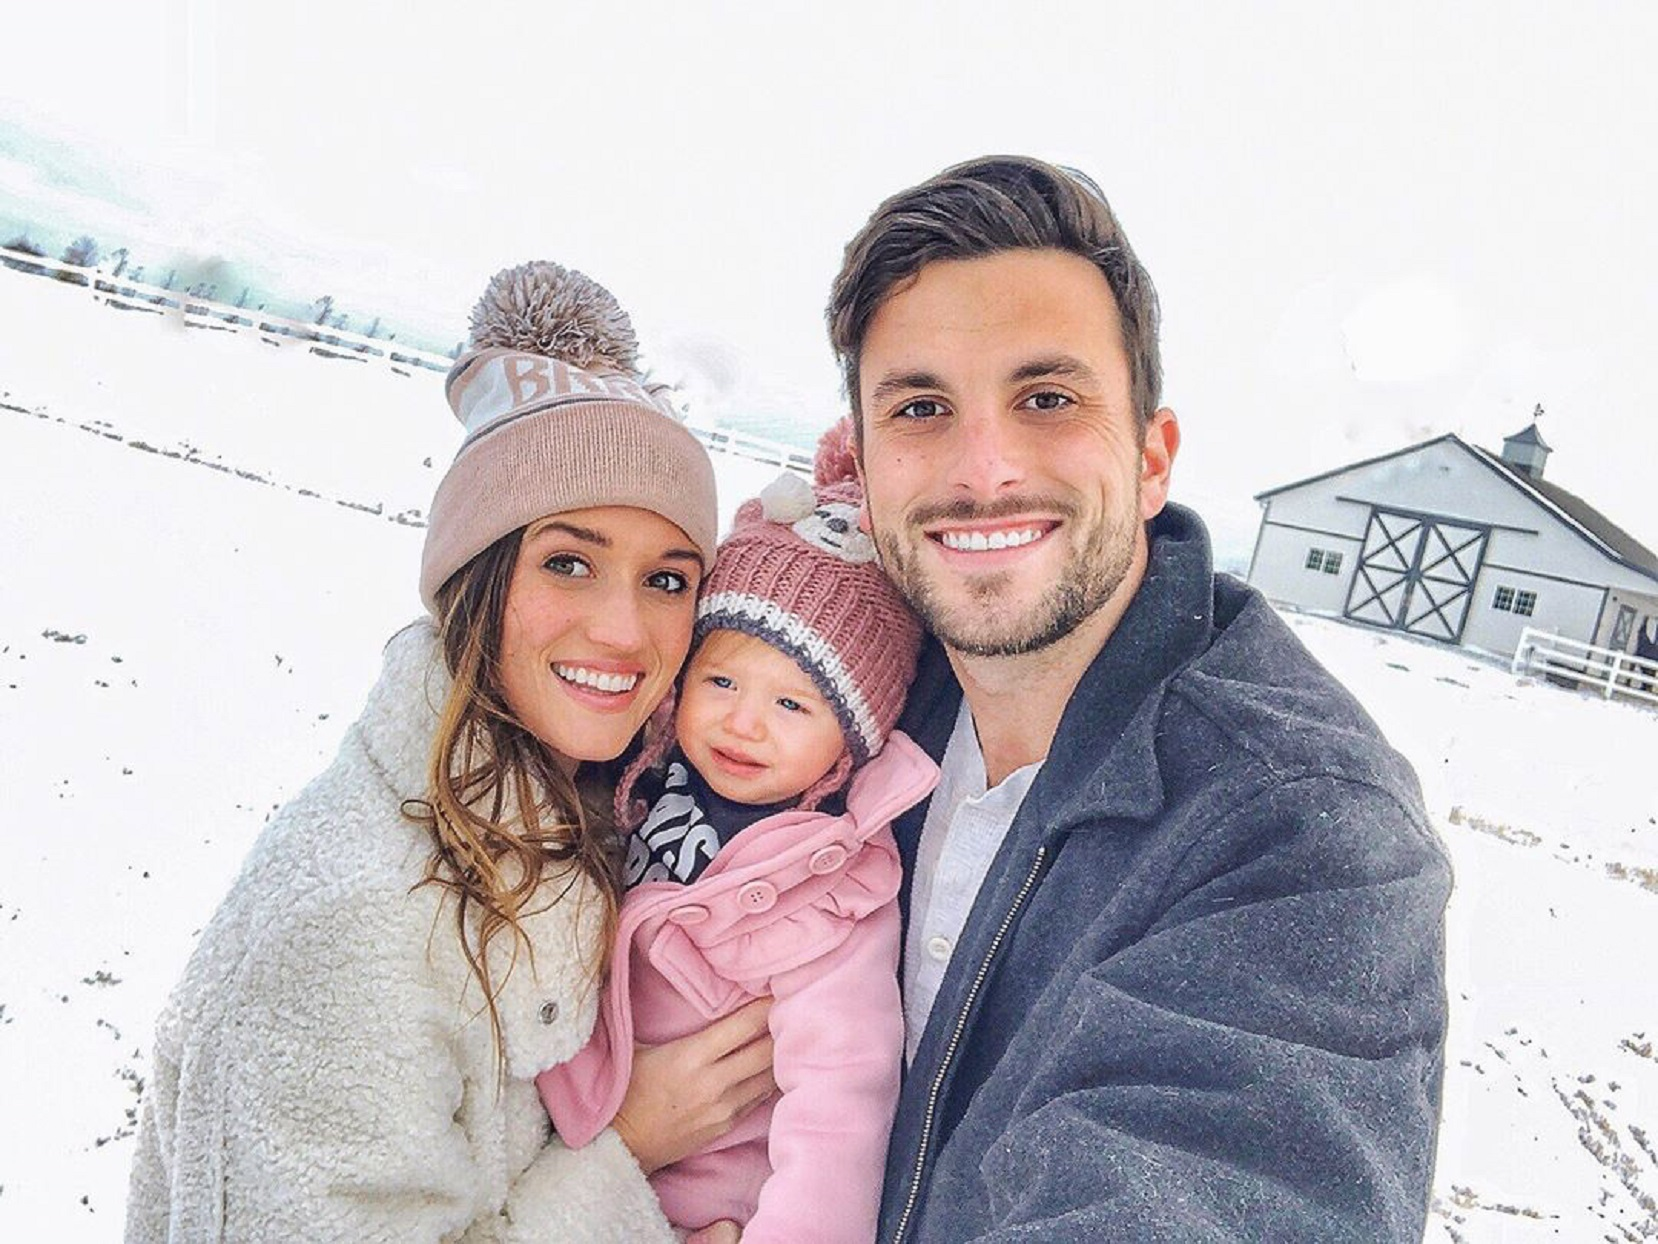 Pregnant Jade Roper Tolbert Slams Followers for Saying Her Daughter Is 'Showing Signs of Autism'